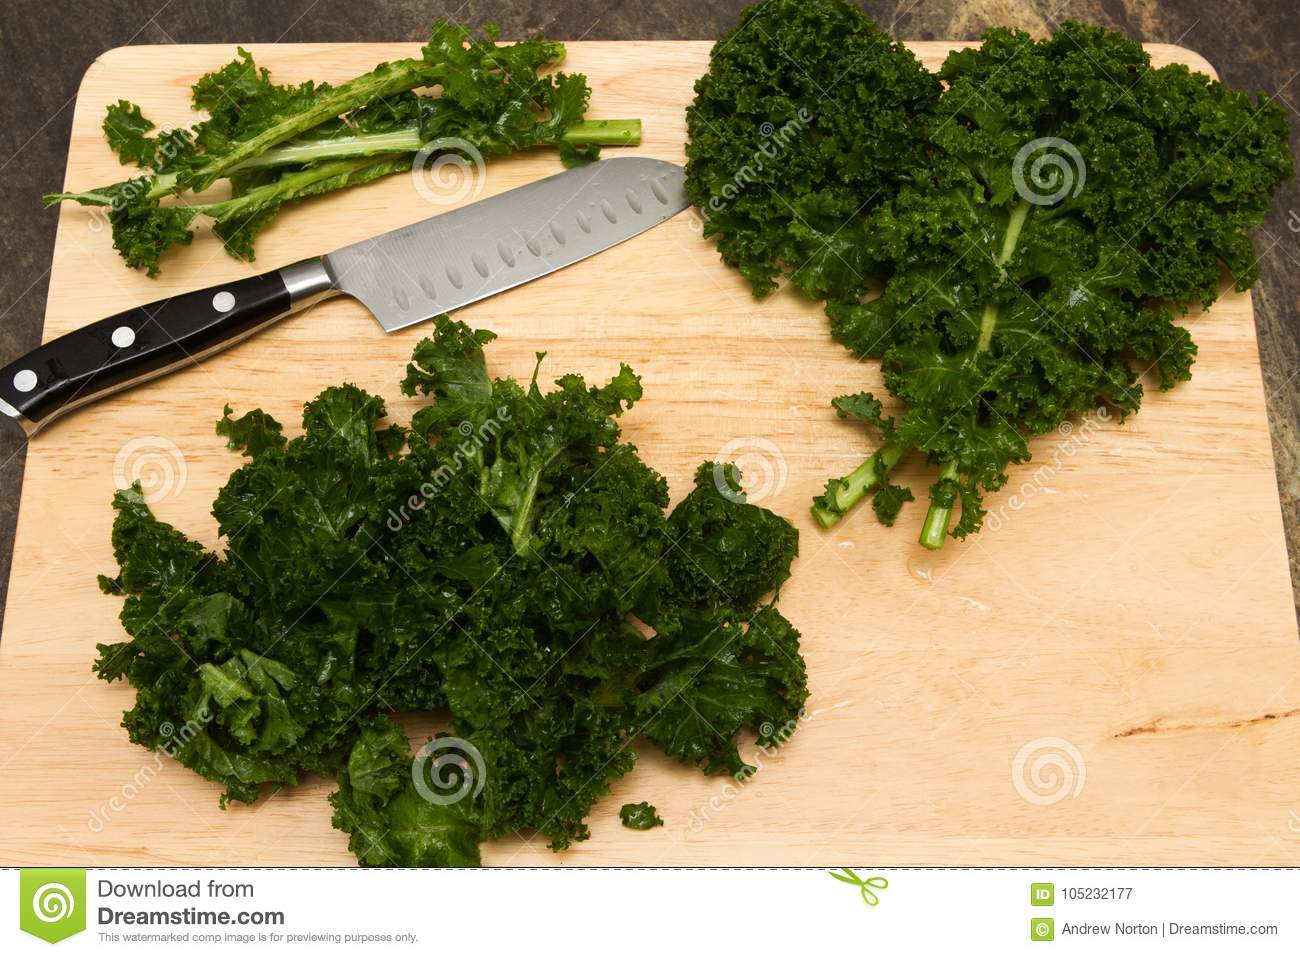 Curly kale nutrition